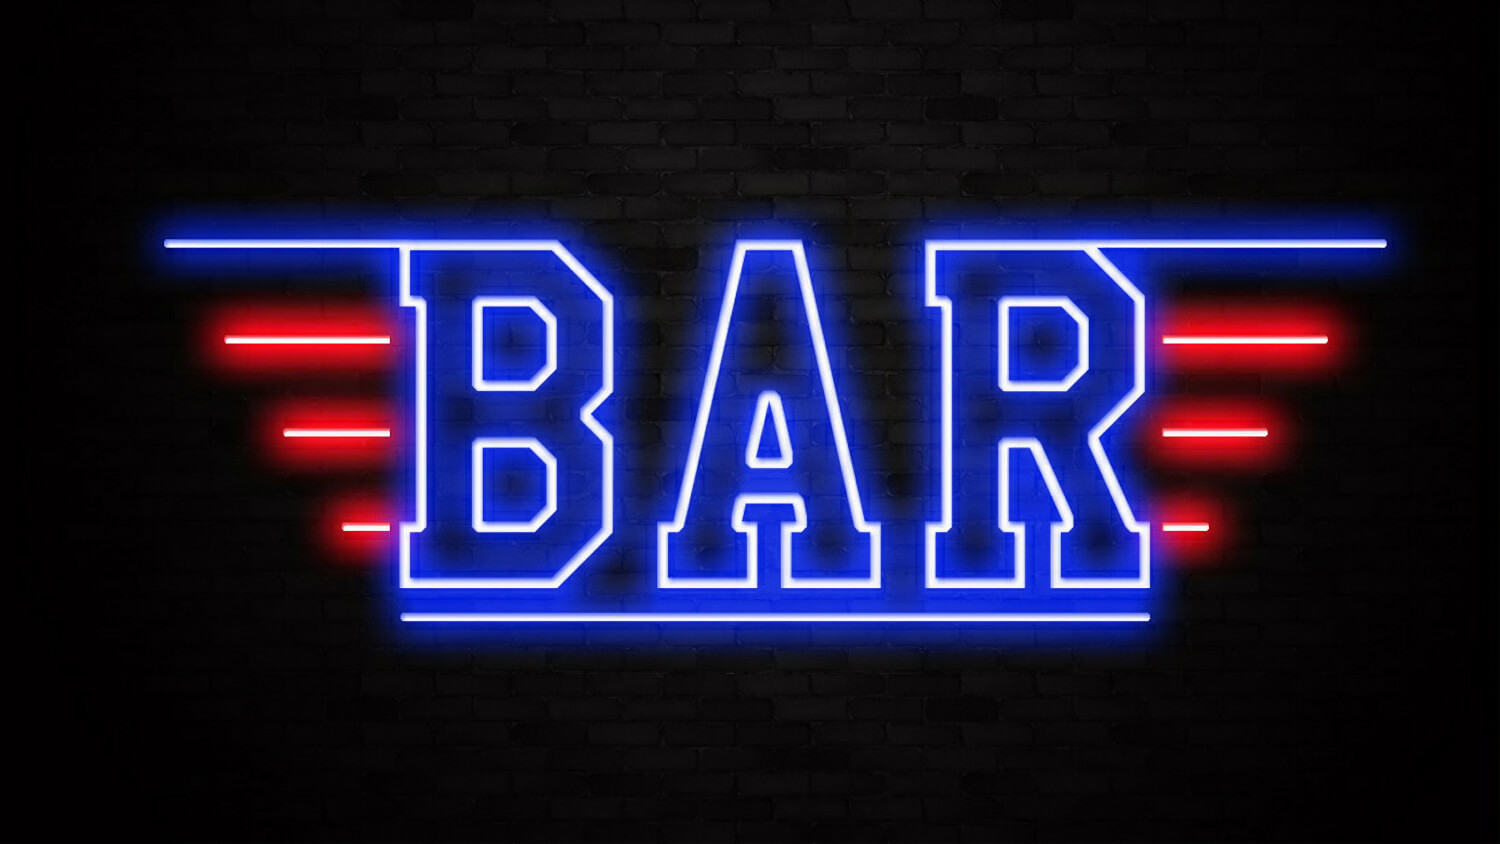 Led Lights Bars Top Gun Neon Sign Liberty Games Subaru